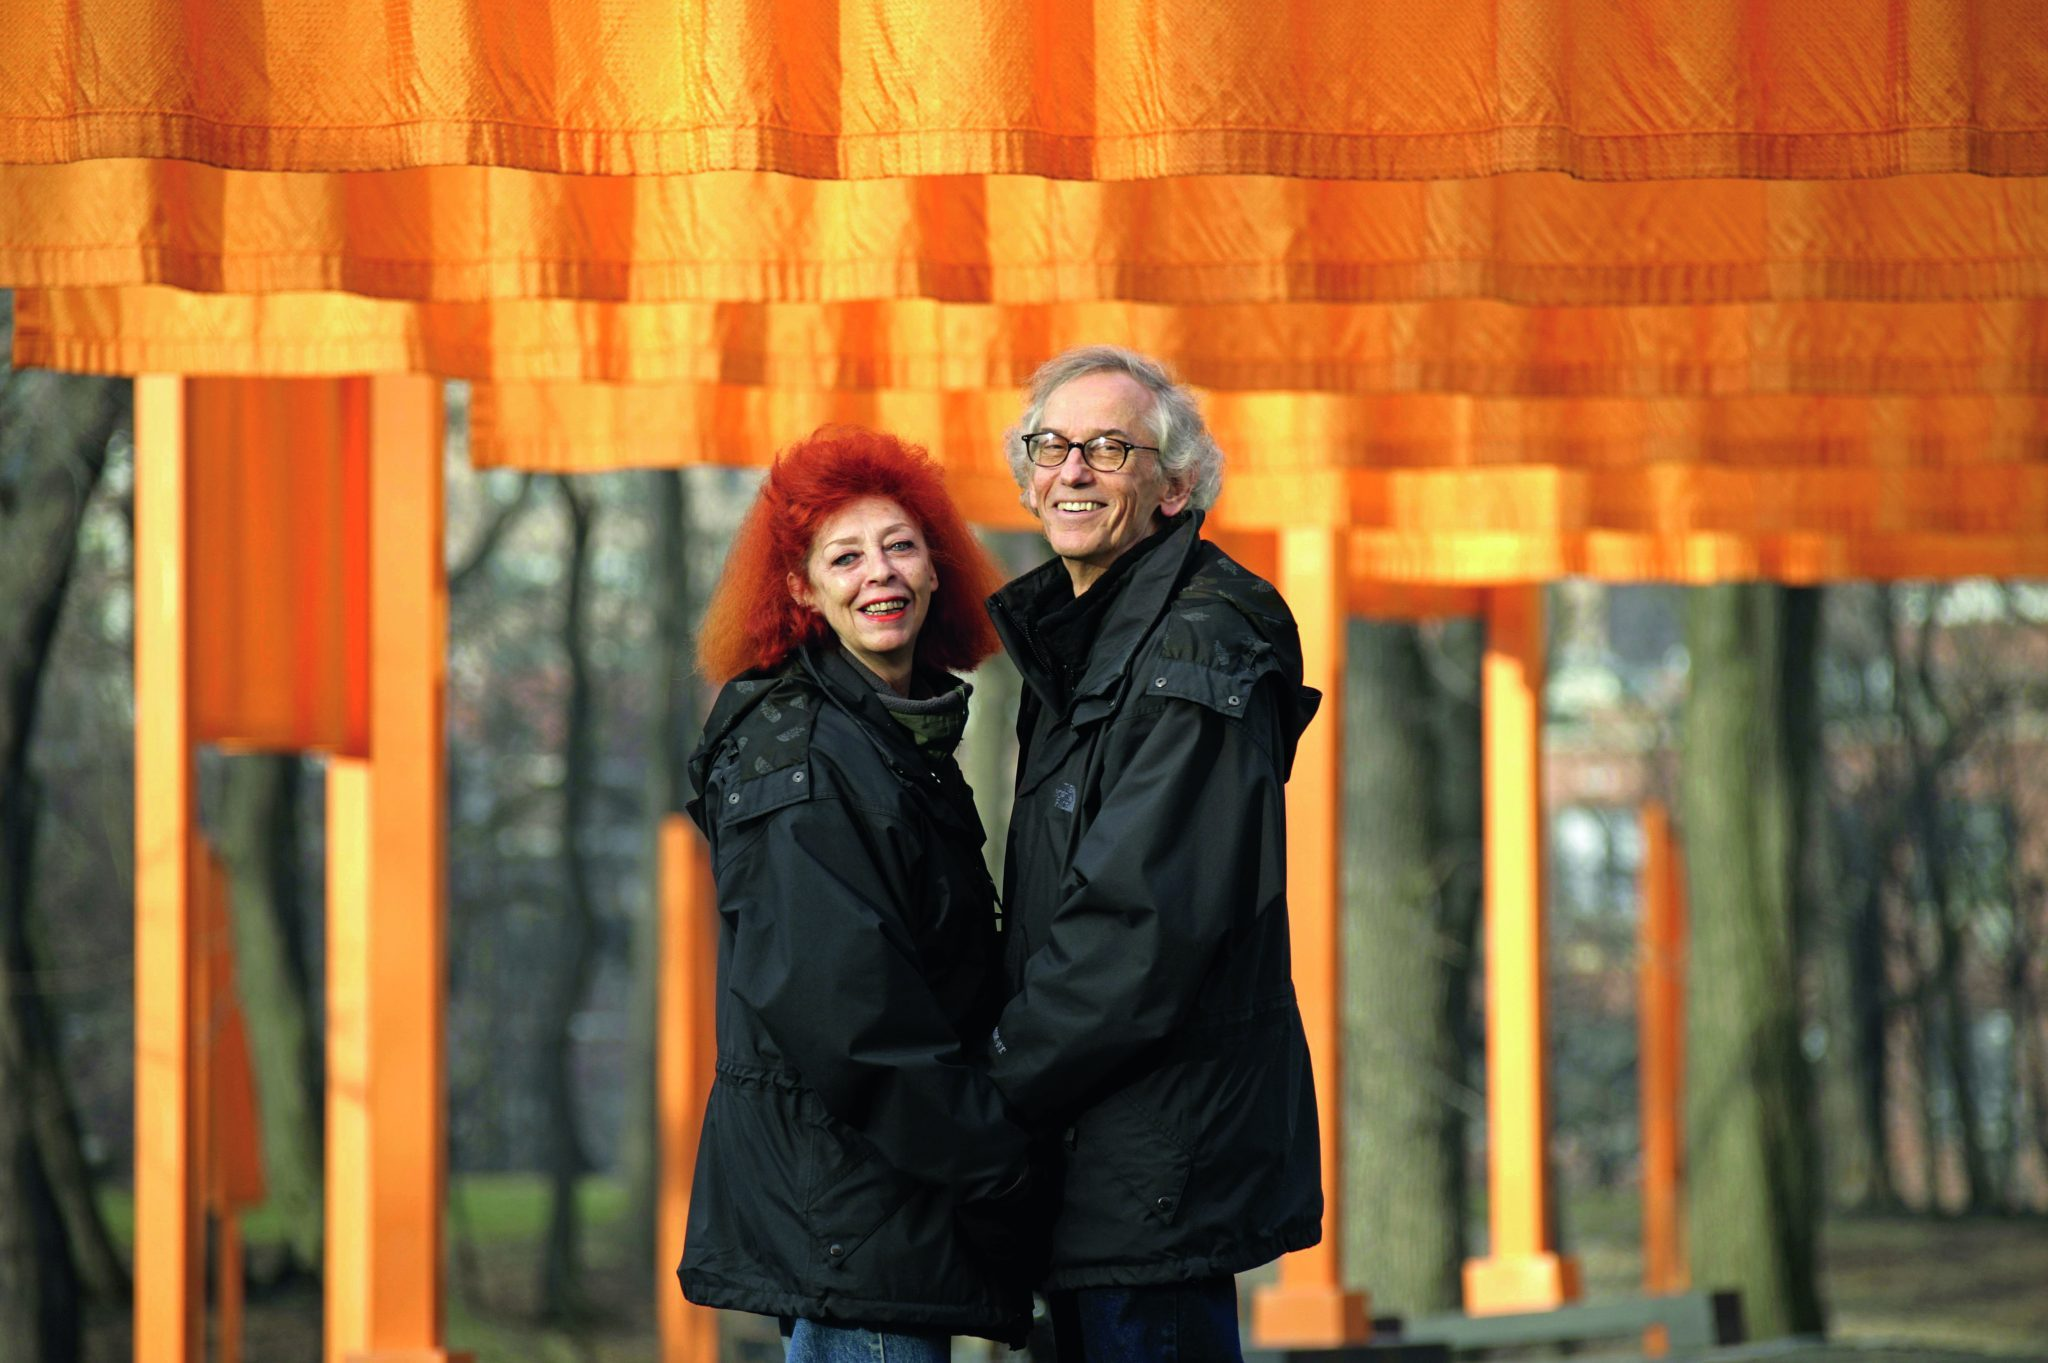 Christo and Jeanne Claude image NewYork 2005 (c) Wolgang Volz